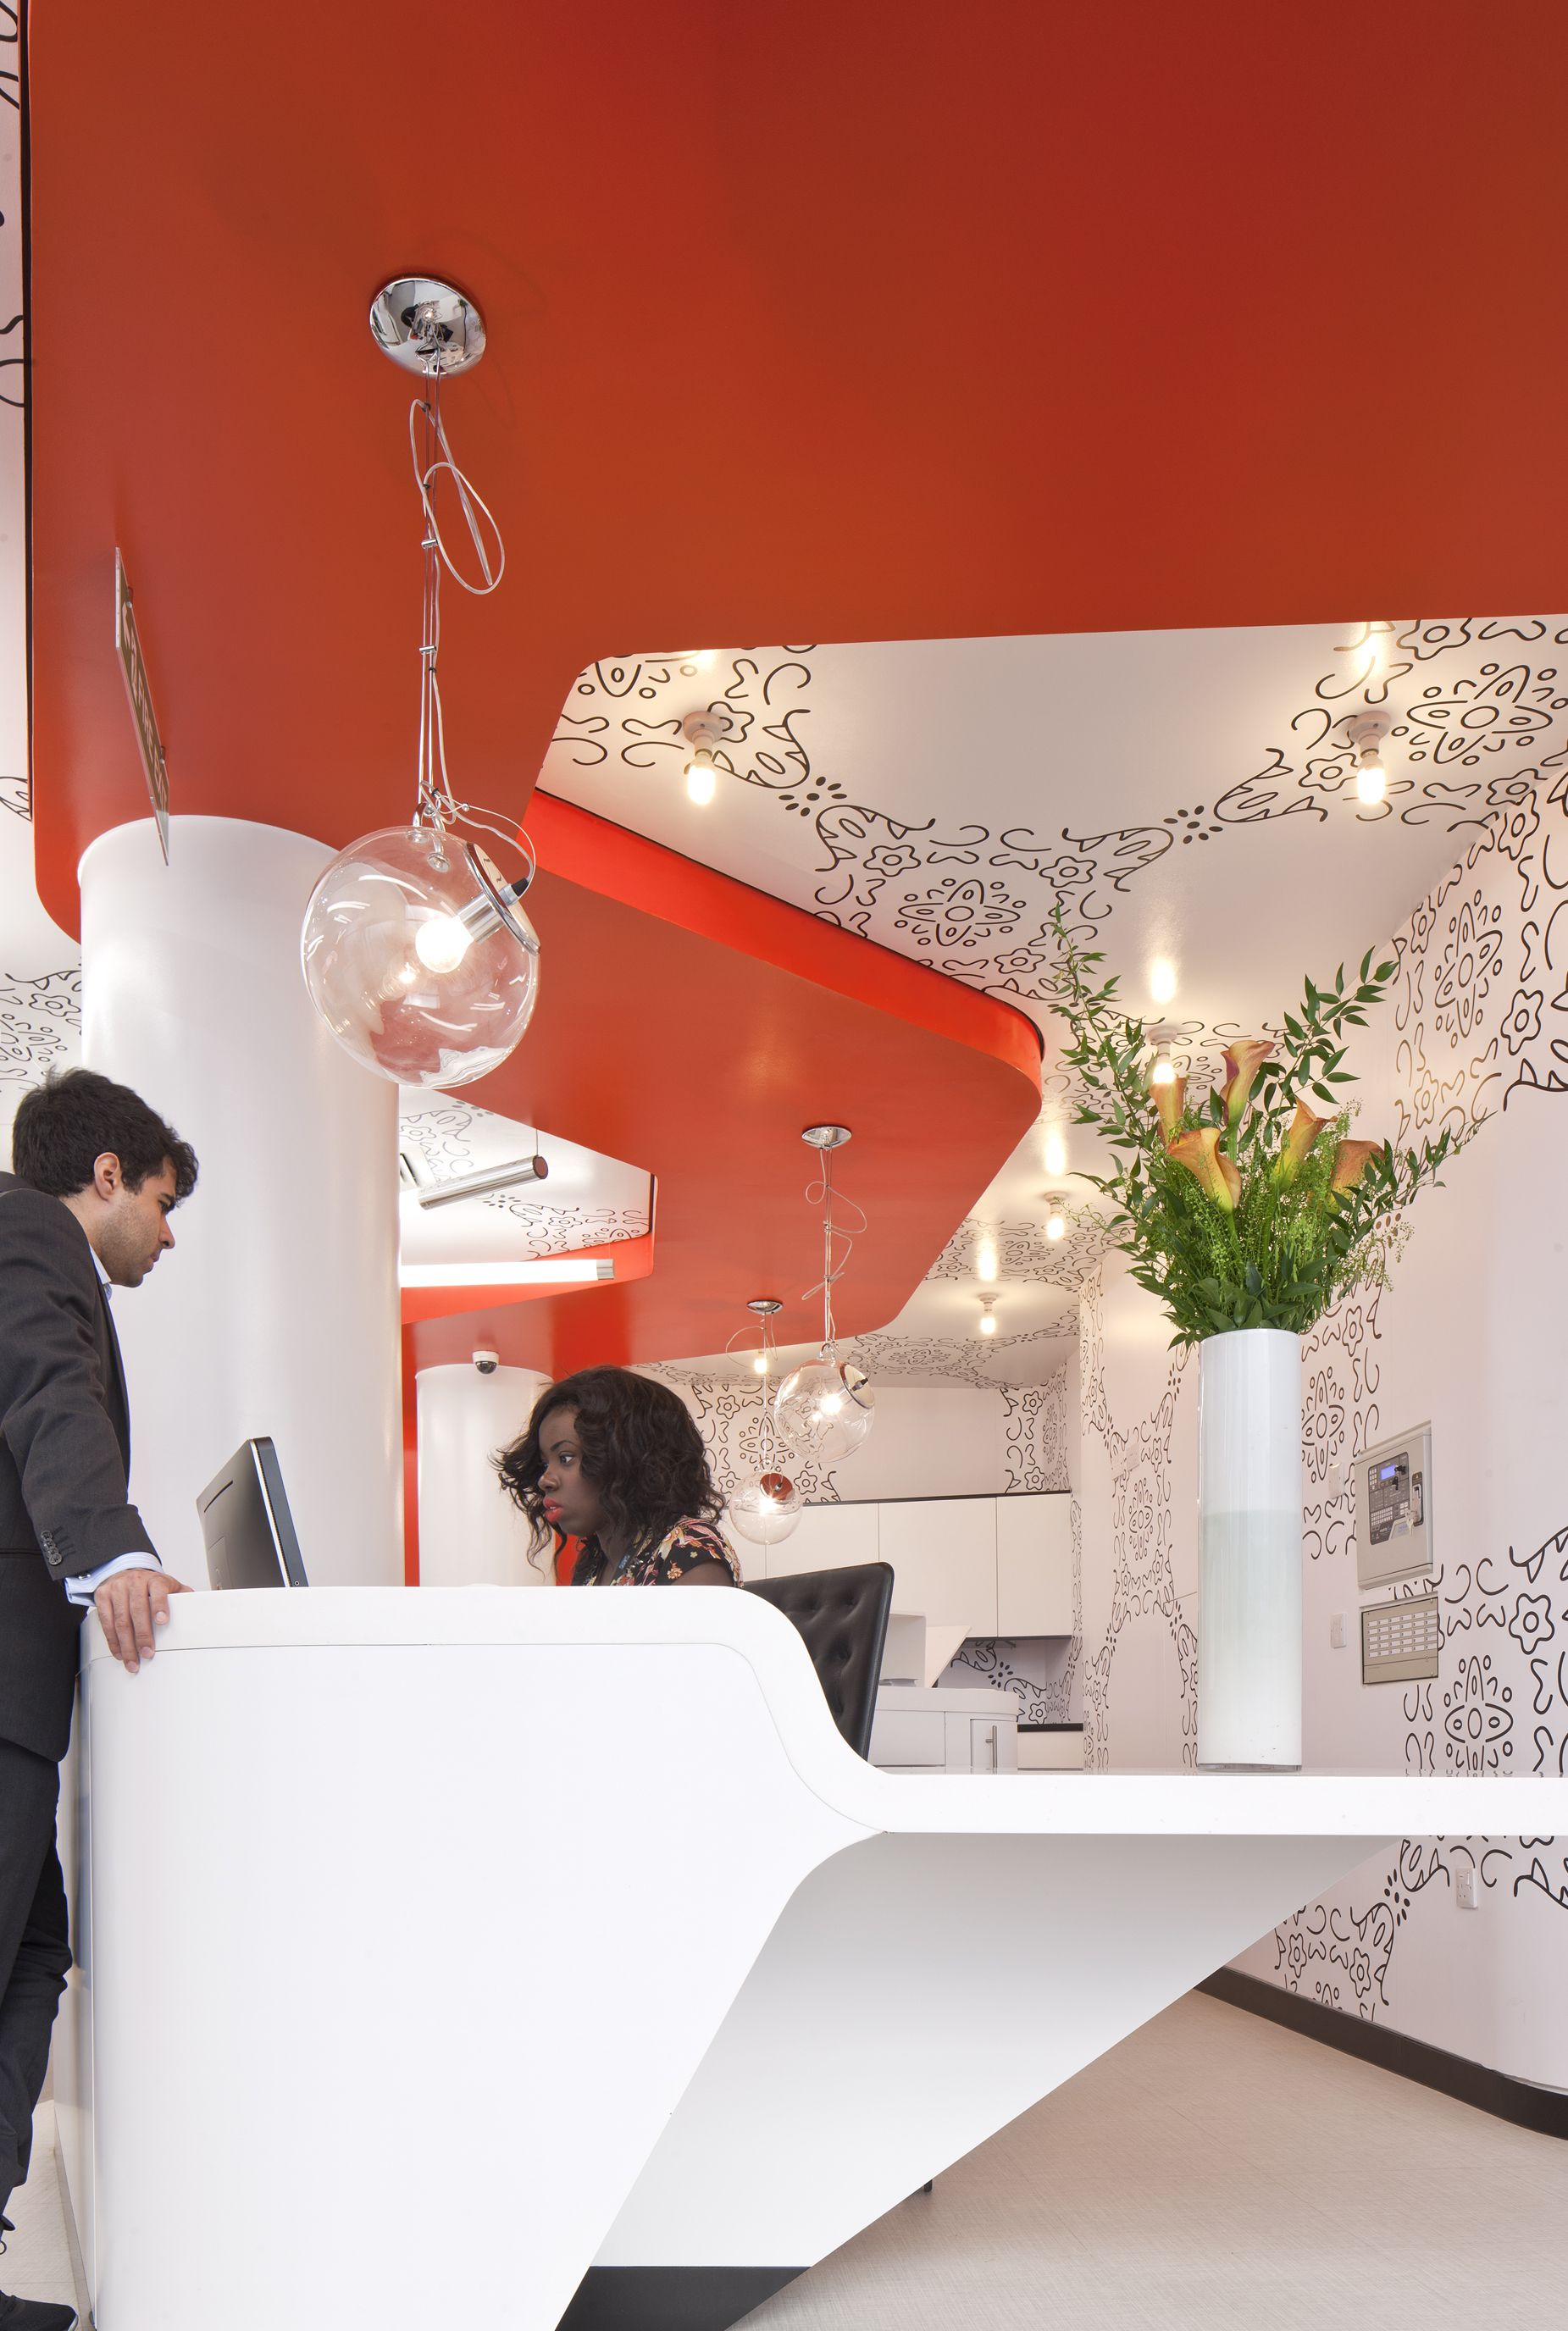 Dean Street Express NHS Clinic by PENSON DESIGN Personal Education ual Health